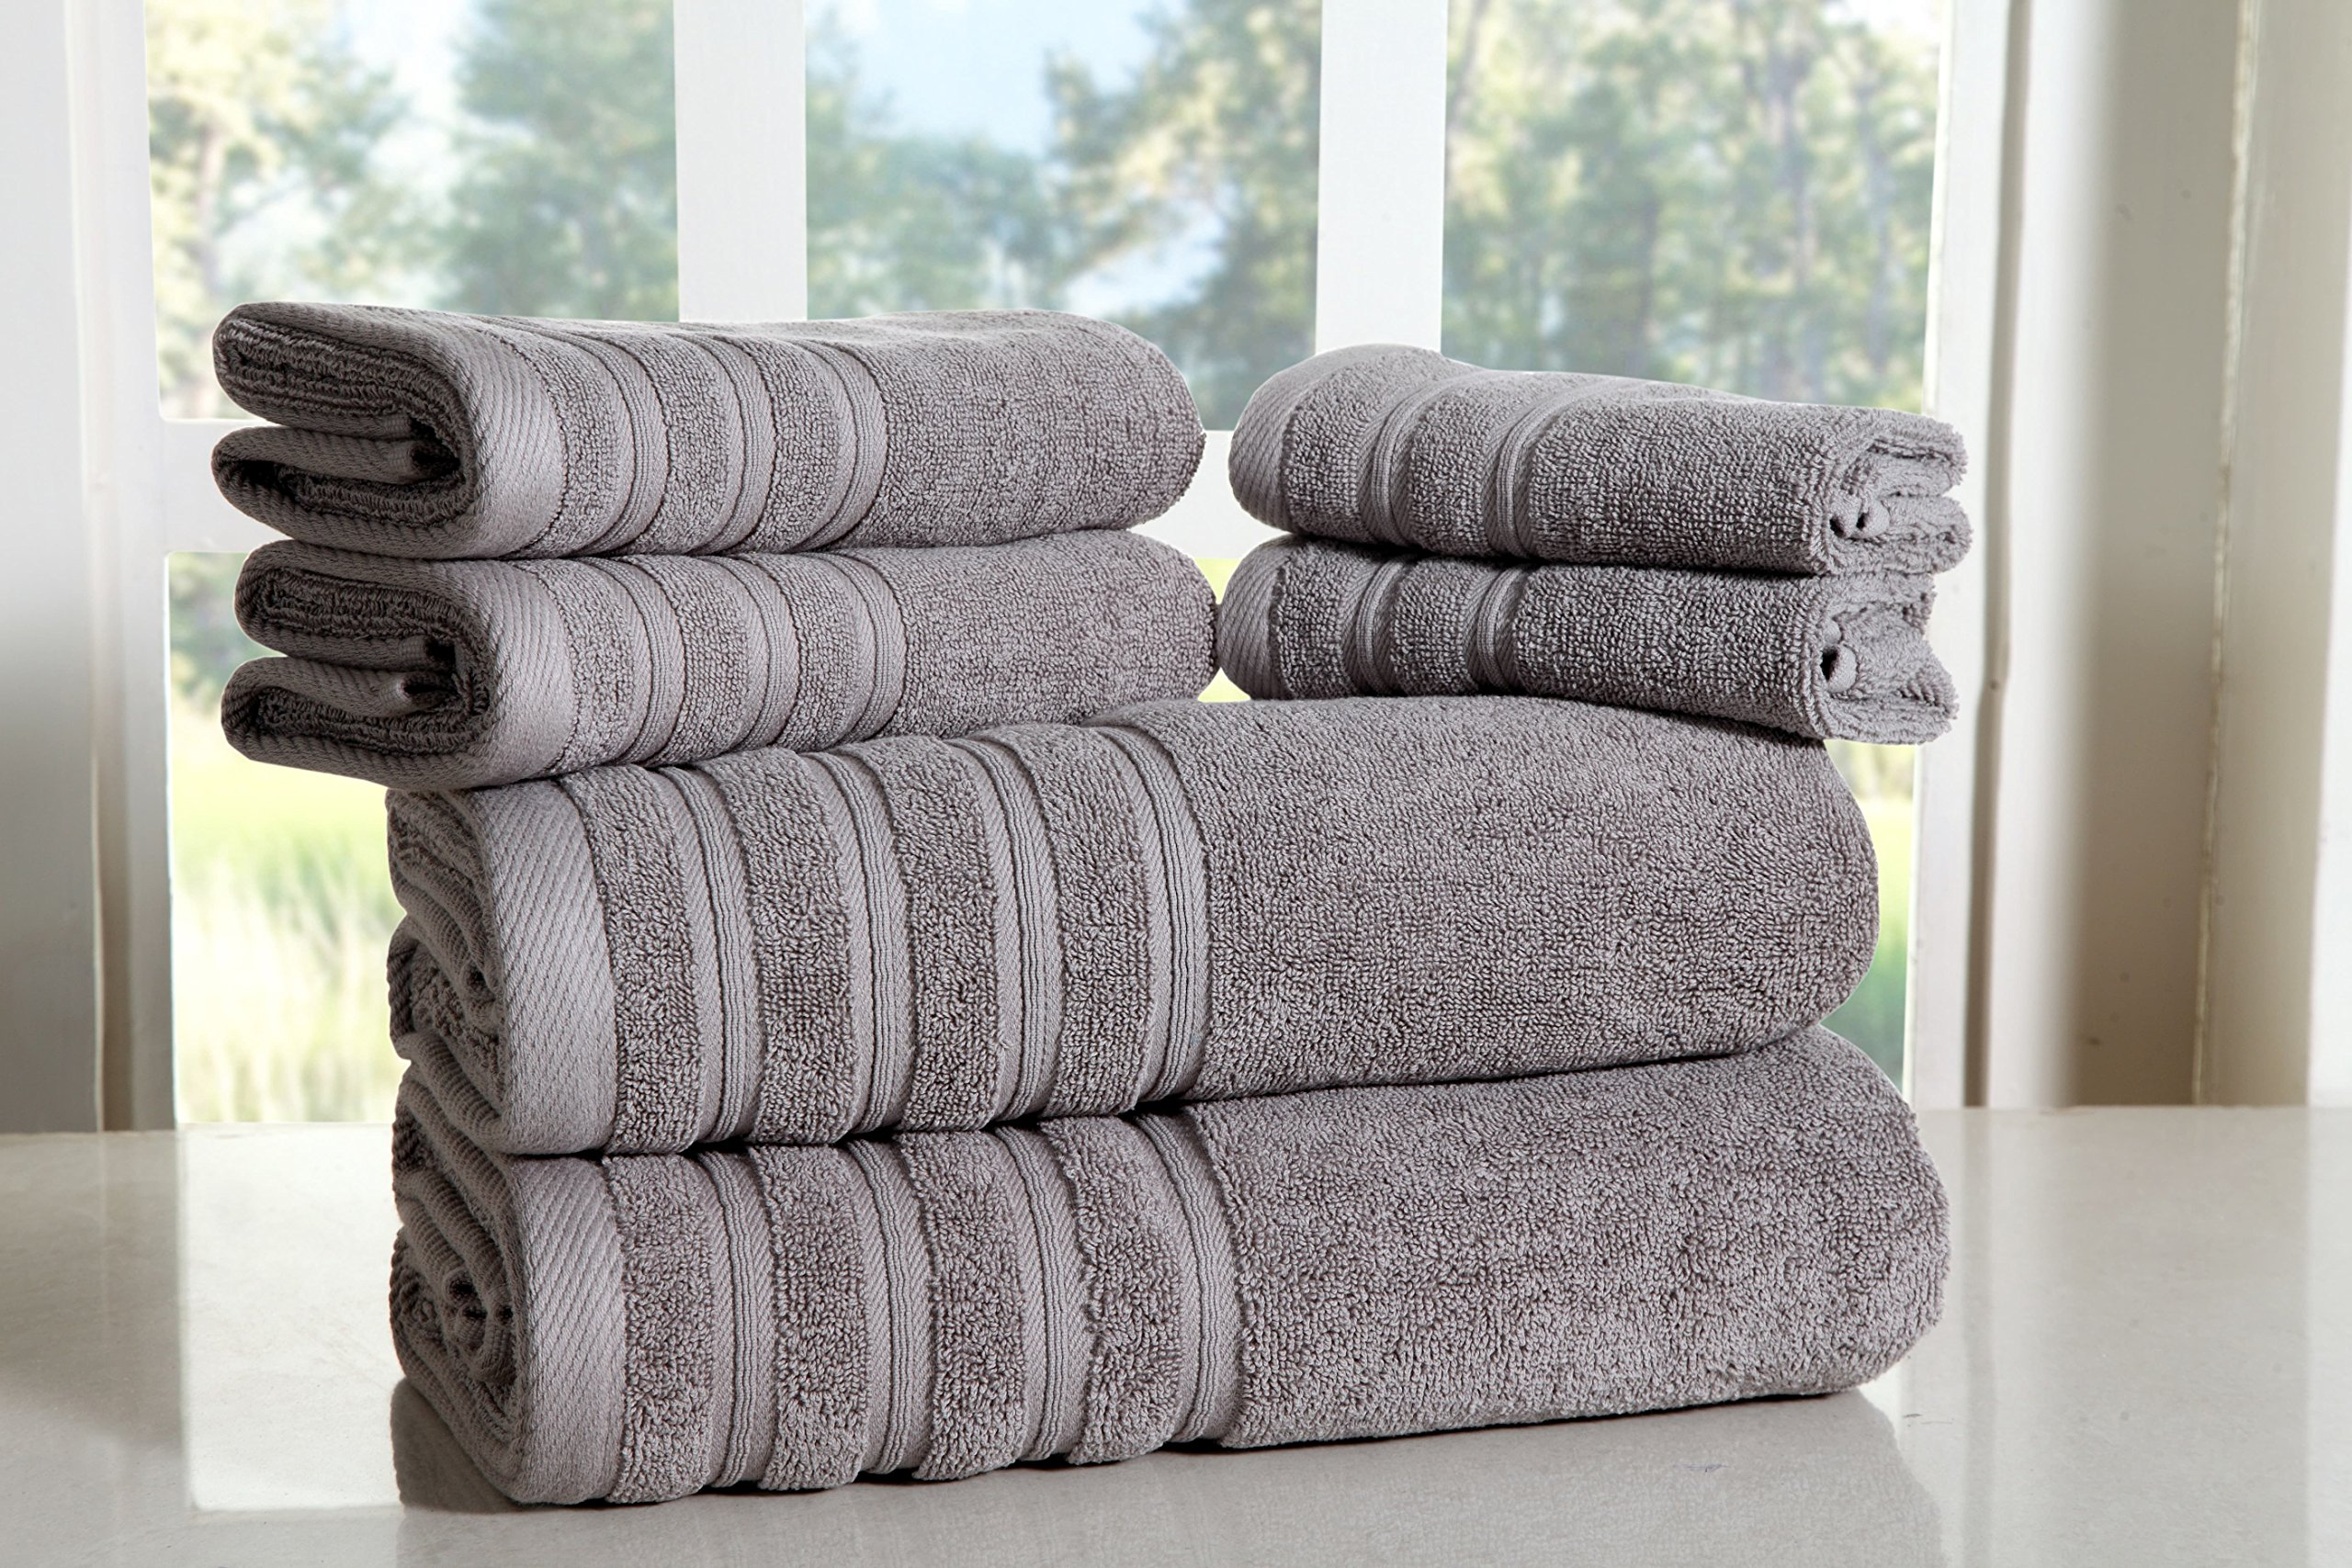 Bed Bath Fashions Fade-Resistant 100% Cotton 6-Piece Towel Set, Hotel Quality Bath Hand Wash Towels, Luxury Super Soft and Highly Absorbent Bathroom Towels (Silver)